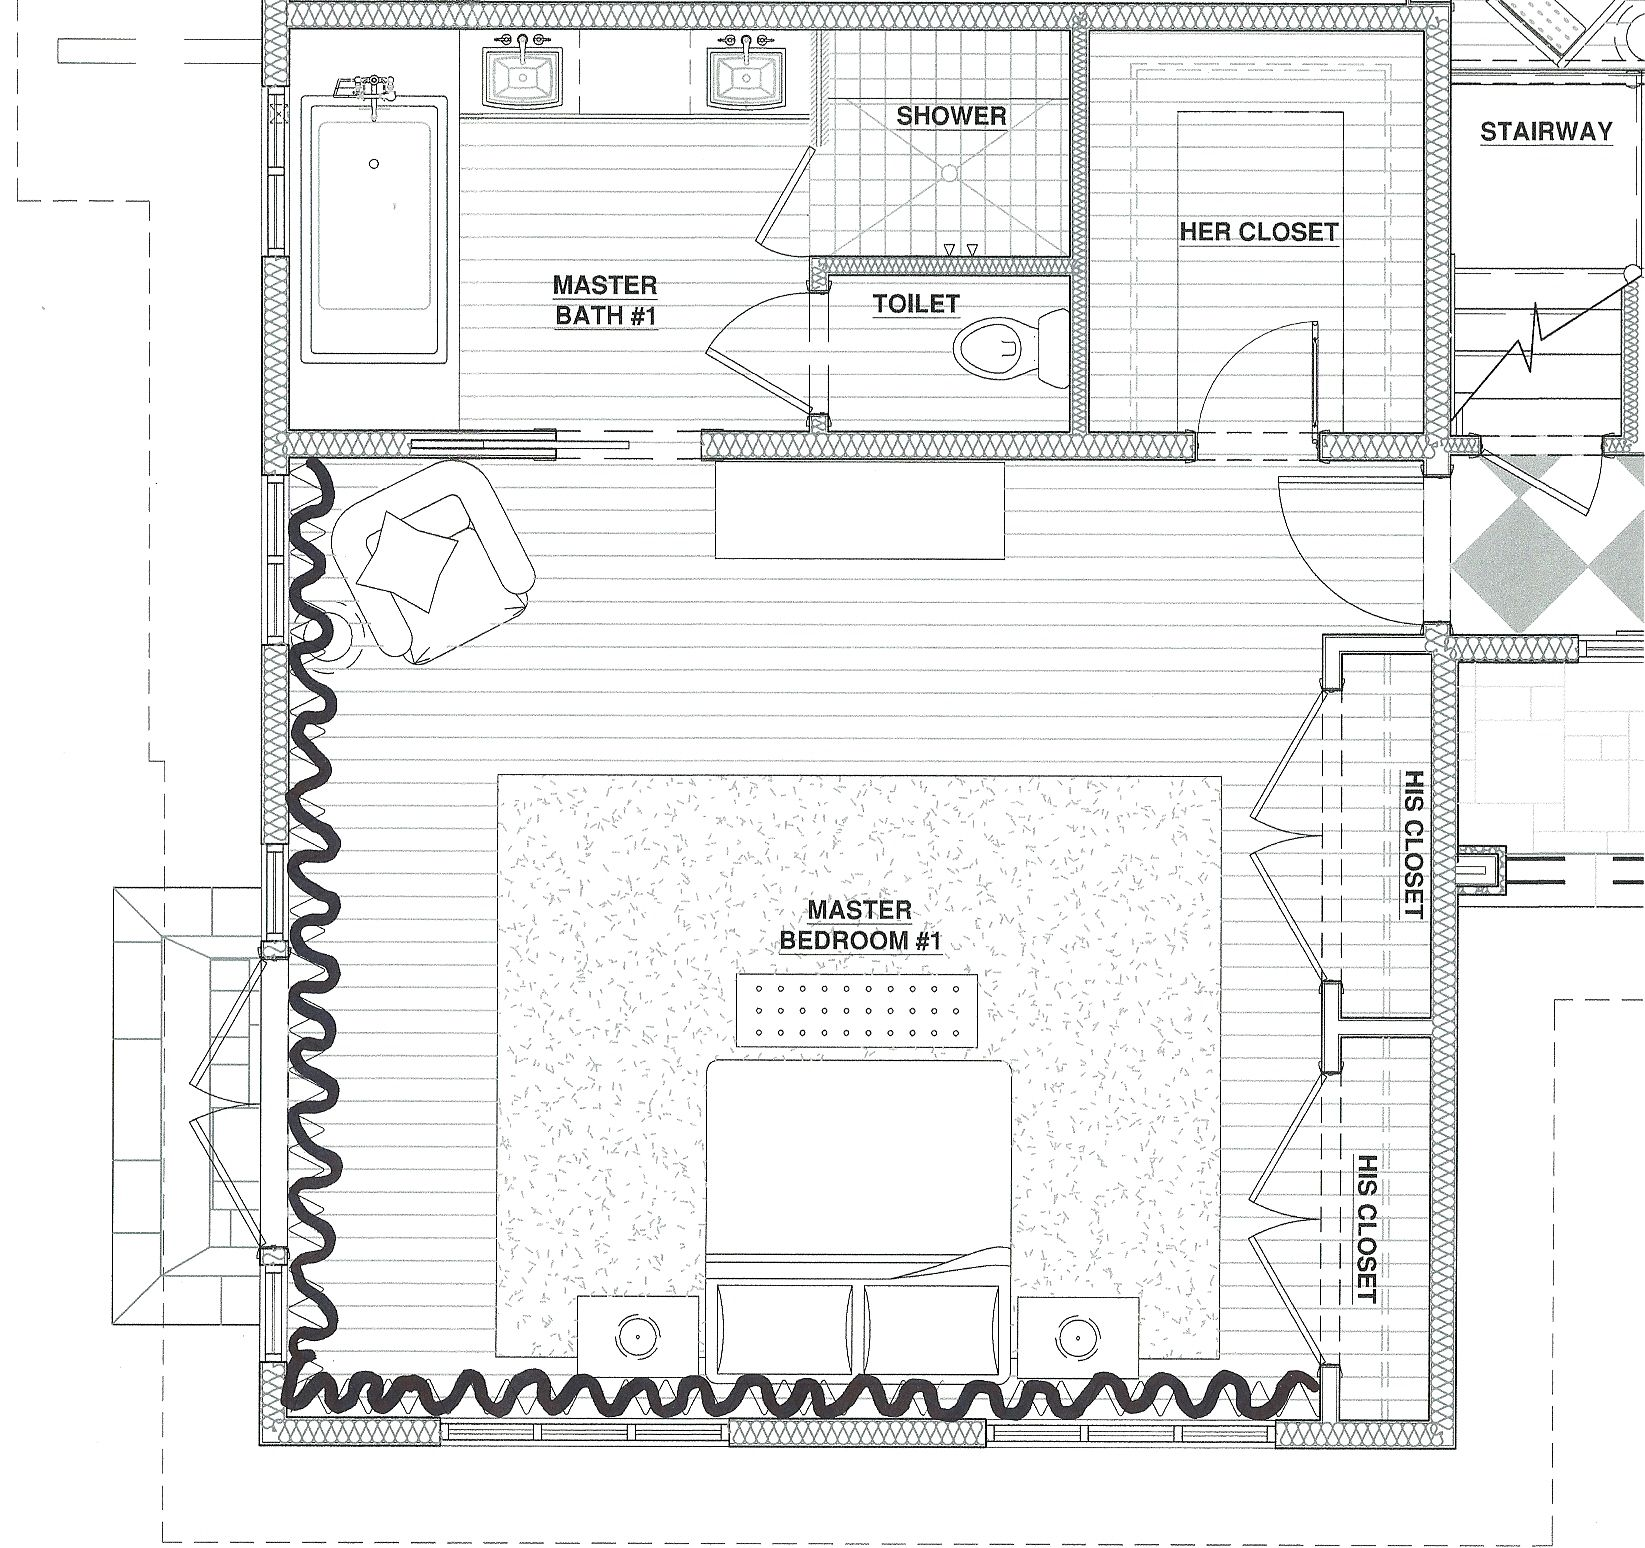 master bedroom floor plans | Picture Gallery of the Master ...